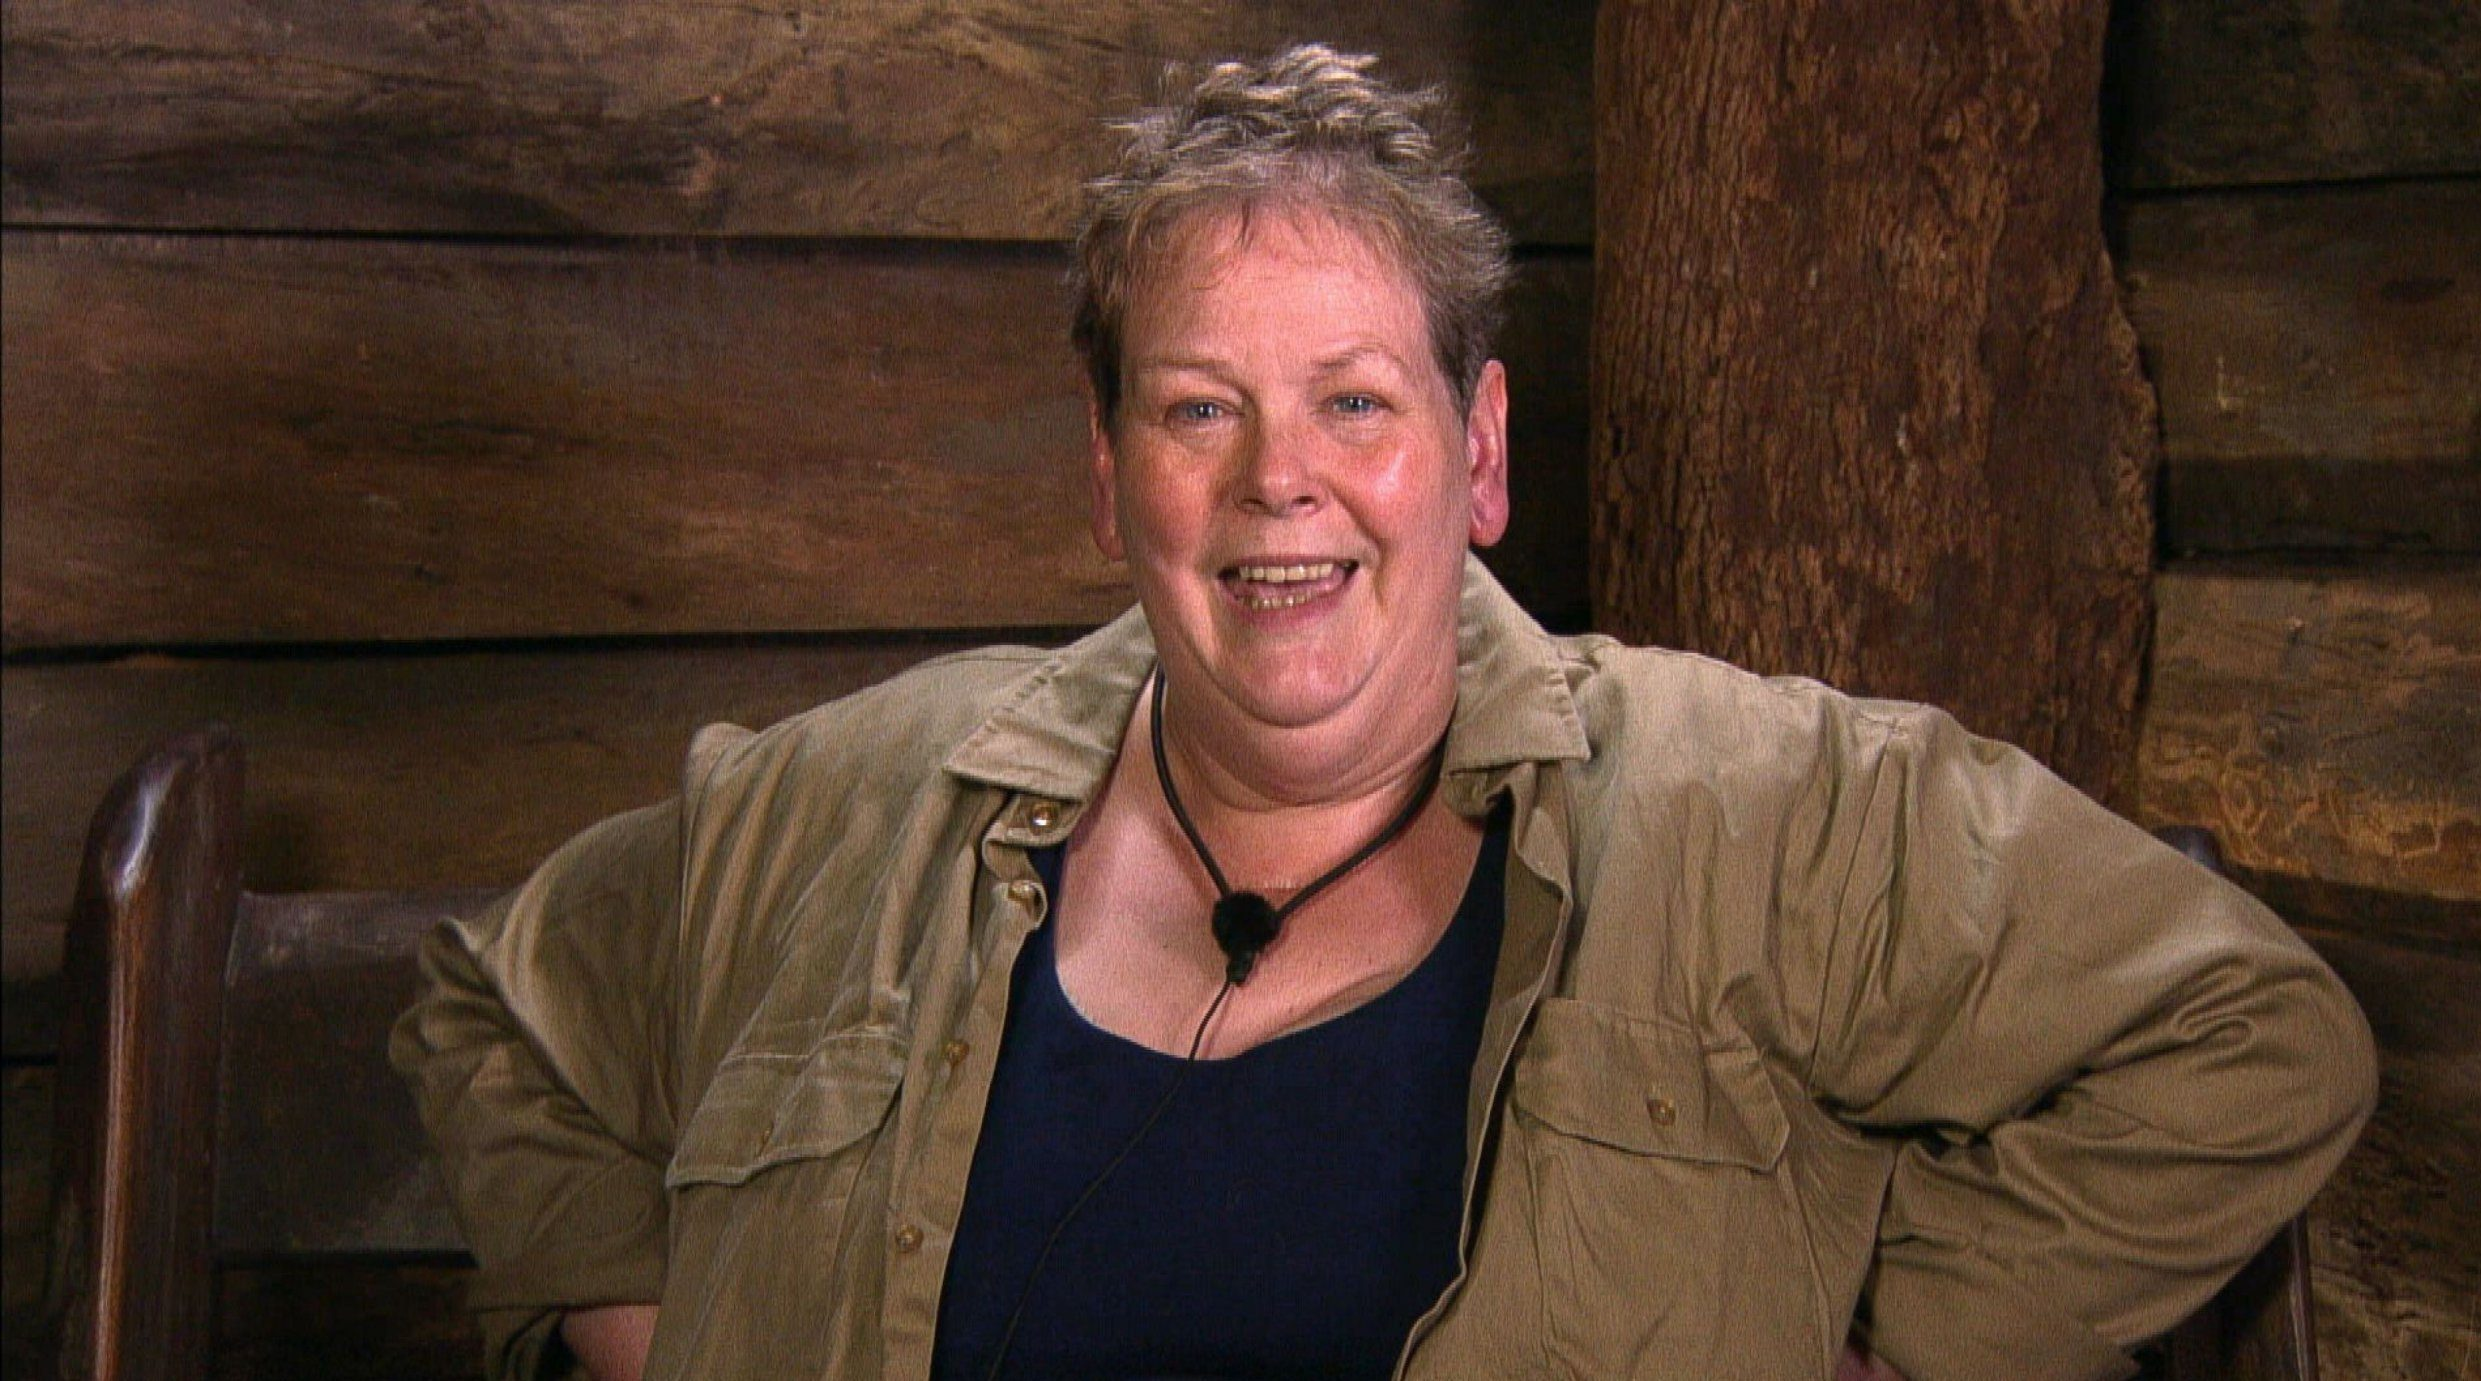 STRICT EMBARGO - NOT TO BE USED BEFORE 22:30 GMT, 24 NOV 2018 - EDITORIAL USE ONLY Mandatory Credit: Photo by ITV/REX/Shutterstock (9991348cj) John Quizzes Anne - Anne Hegerty 'I'm a Celebrity... Get Me Out of Here!' TV Show, Series 18, Australia - 24 Nov 2018